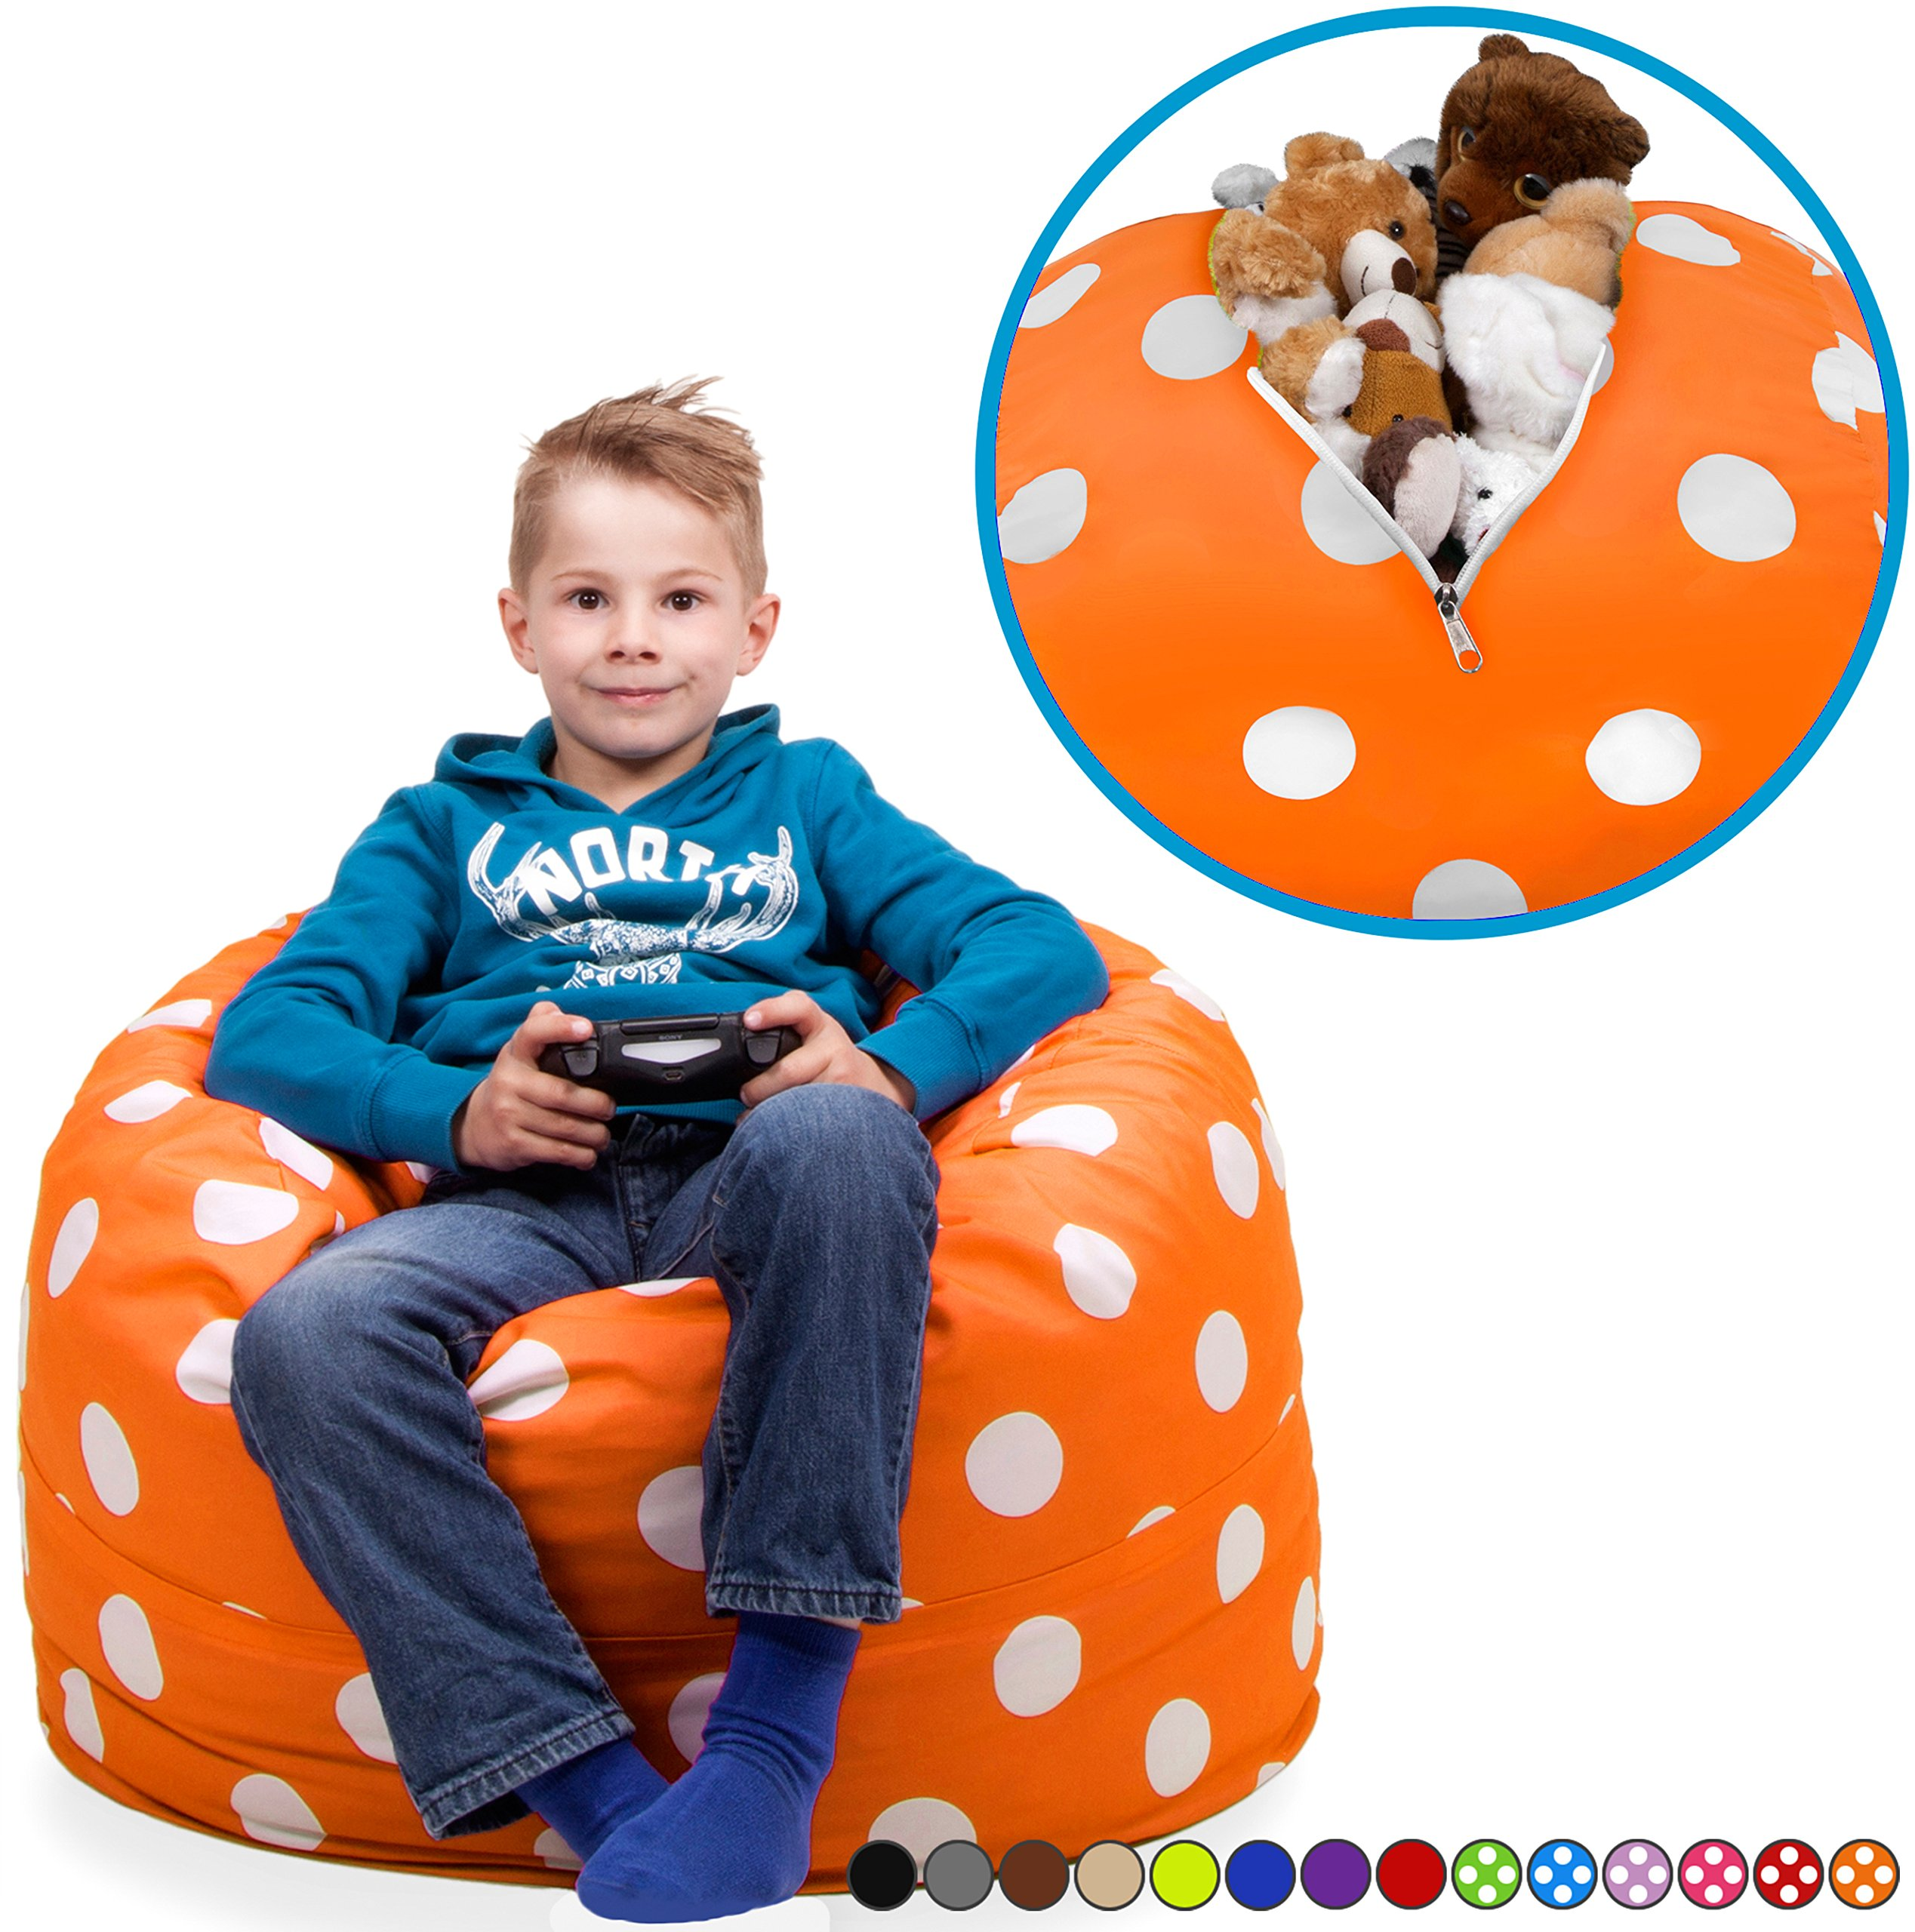 Stuffed Animal Storage Bean Bag Chair In Vibrant Orange With White Polka Dots FILL IT